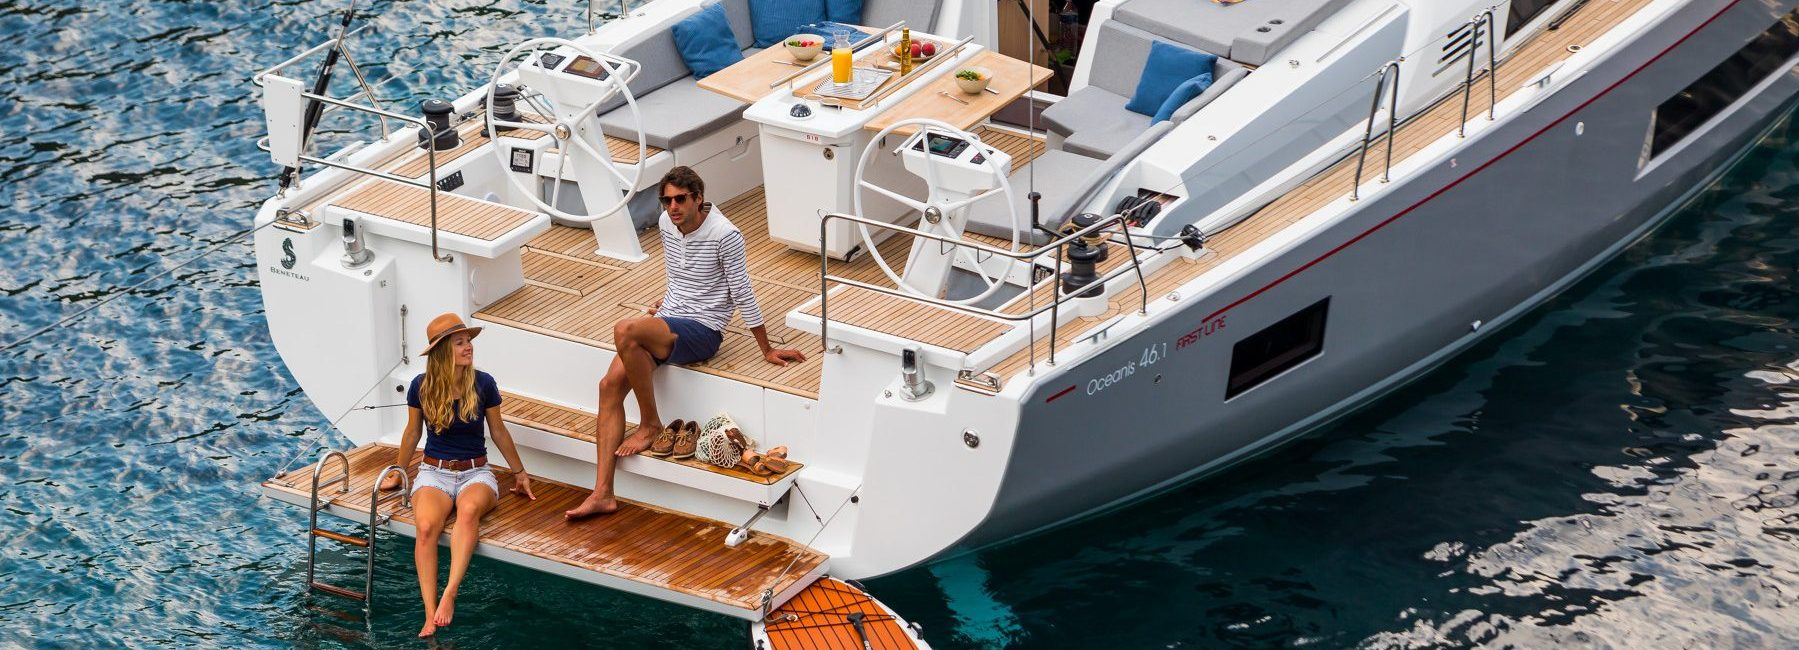 New Beneteau Oceanis 46.1Ph: Guido Cantini / Beneteau